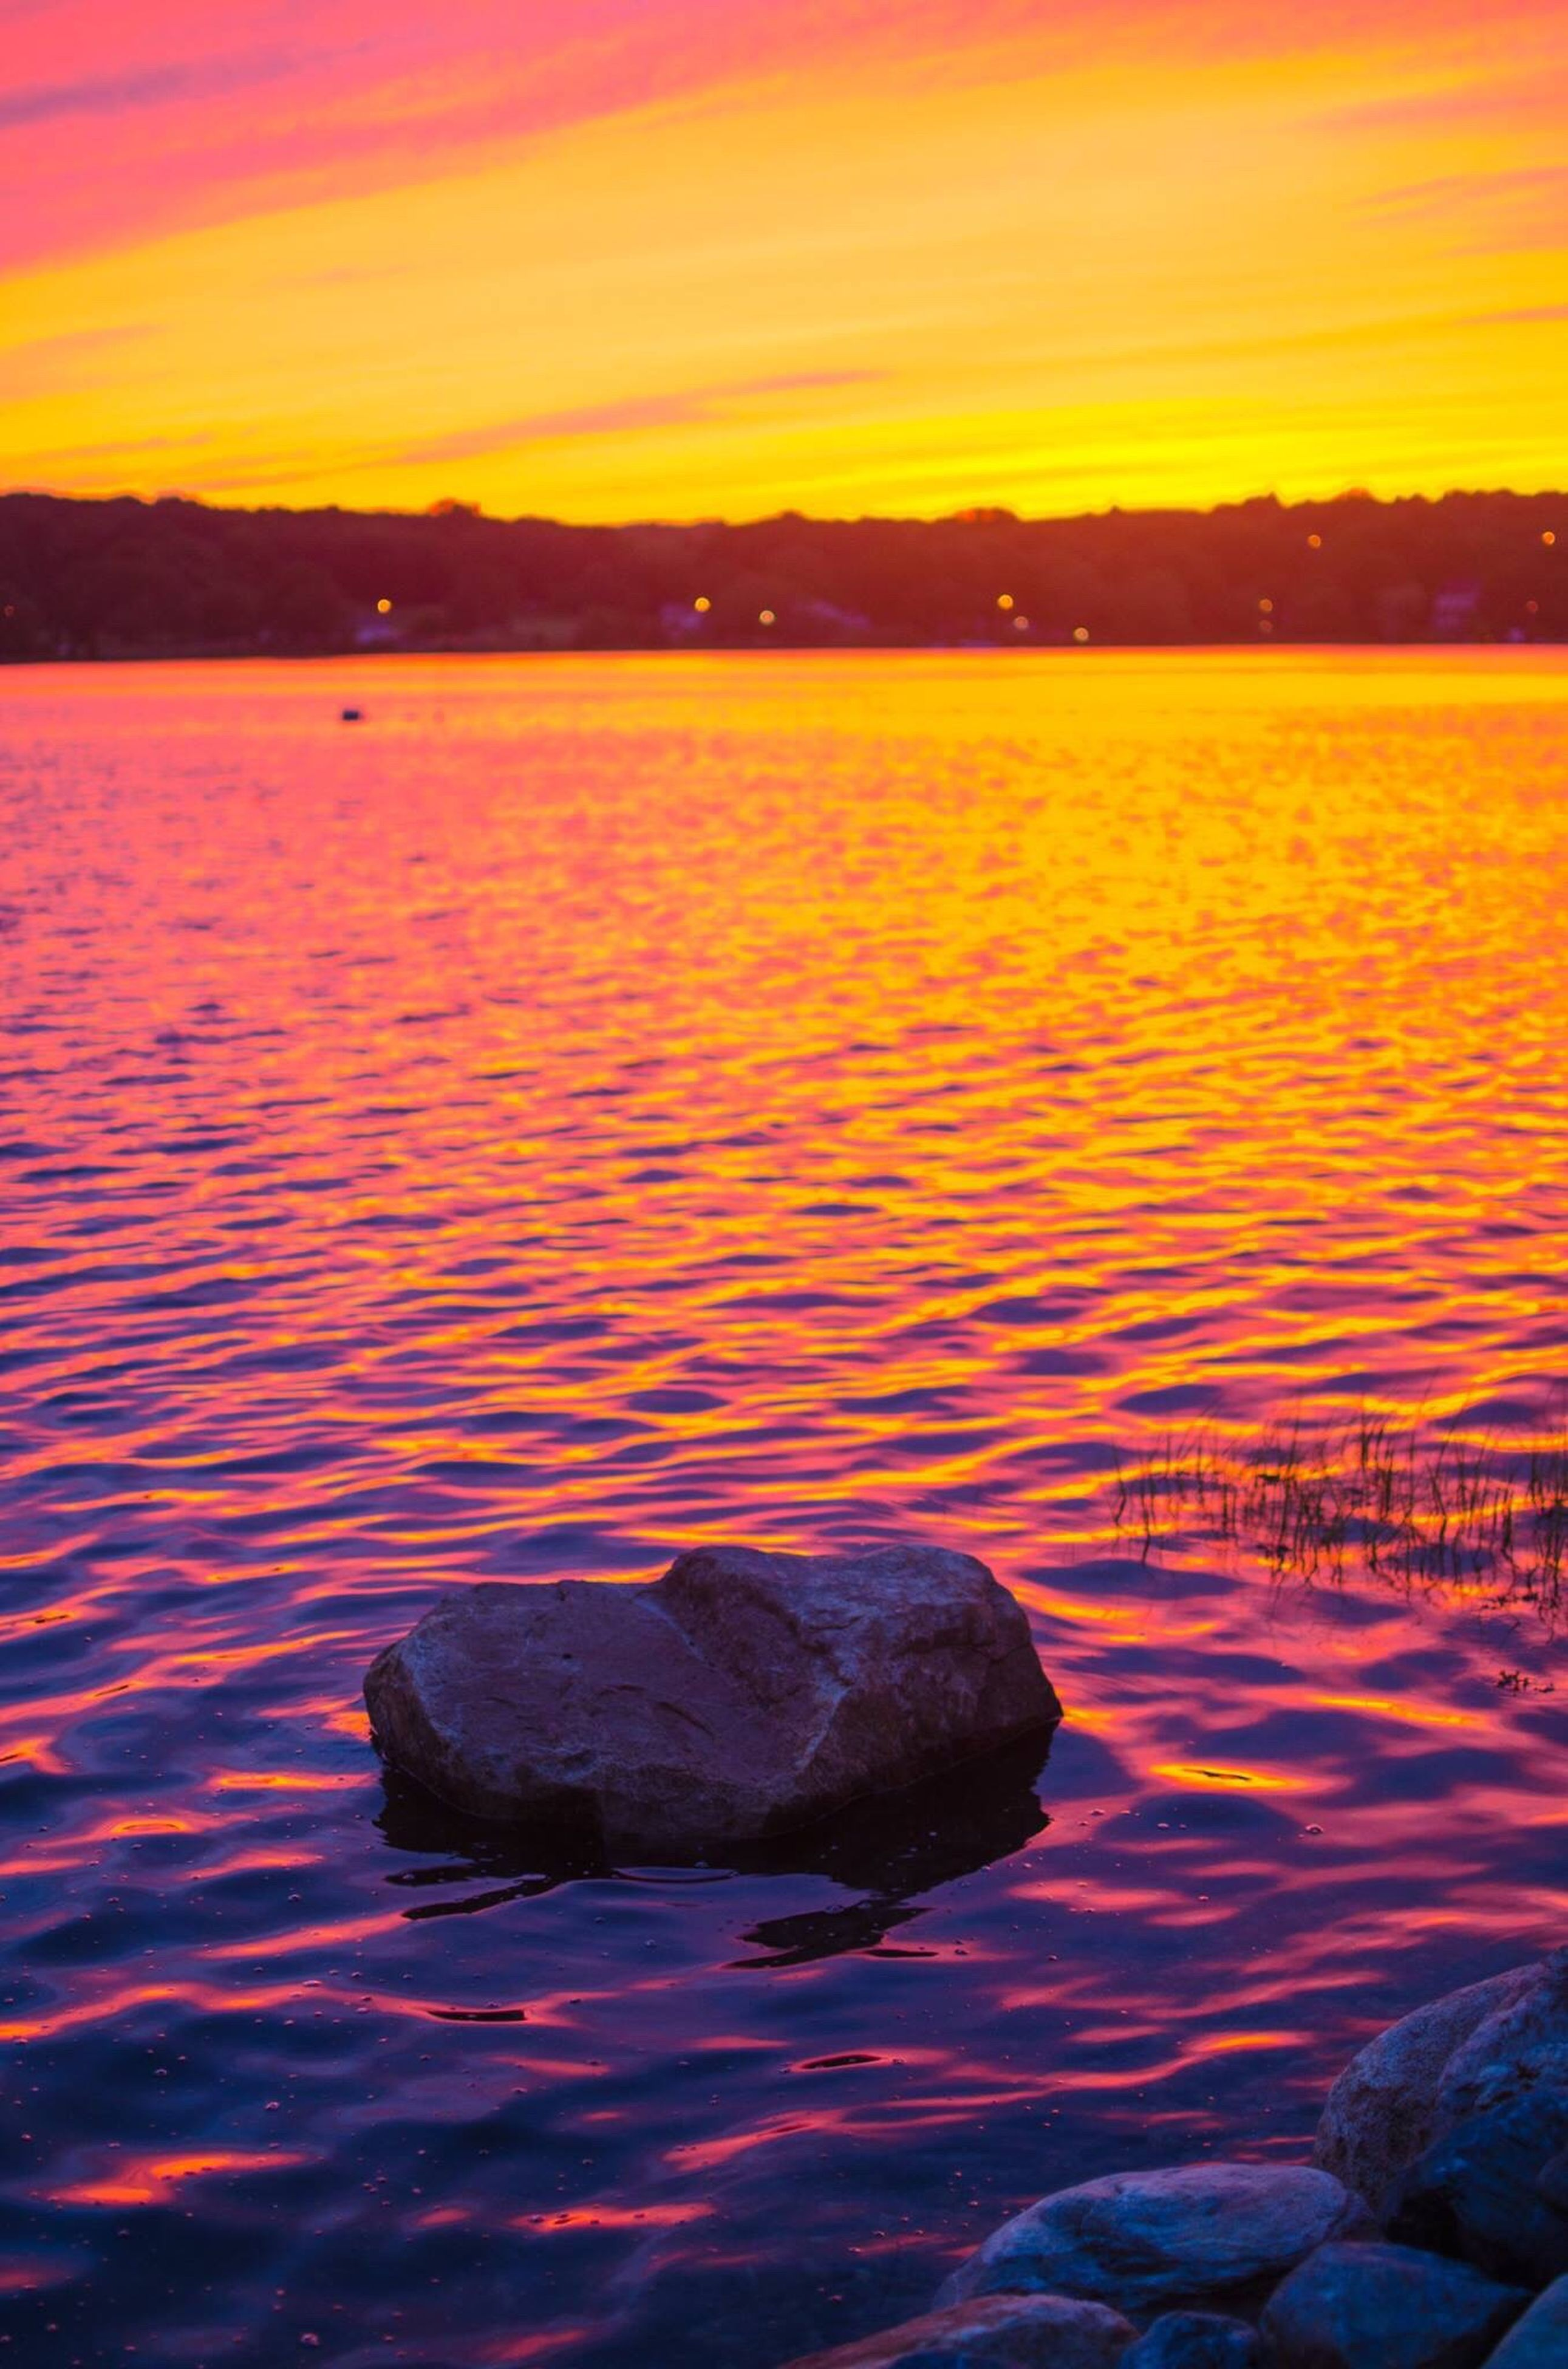 sunset, water, scenics, tranquil scene, tranquility, beauty in nature, sea, waterfront, rock - object, majestic, island, nature, rippled, idyllic, sky, orange color, travel destinations, cloud - sky, water surface, non-urban scene, ocean, seascape, mountain, outdoors, no people, vacations, tourism, romantic sky, shore